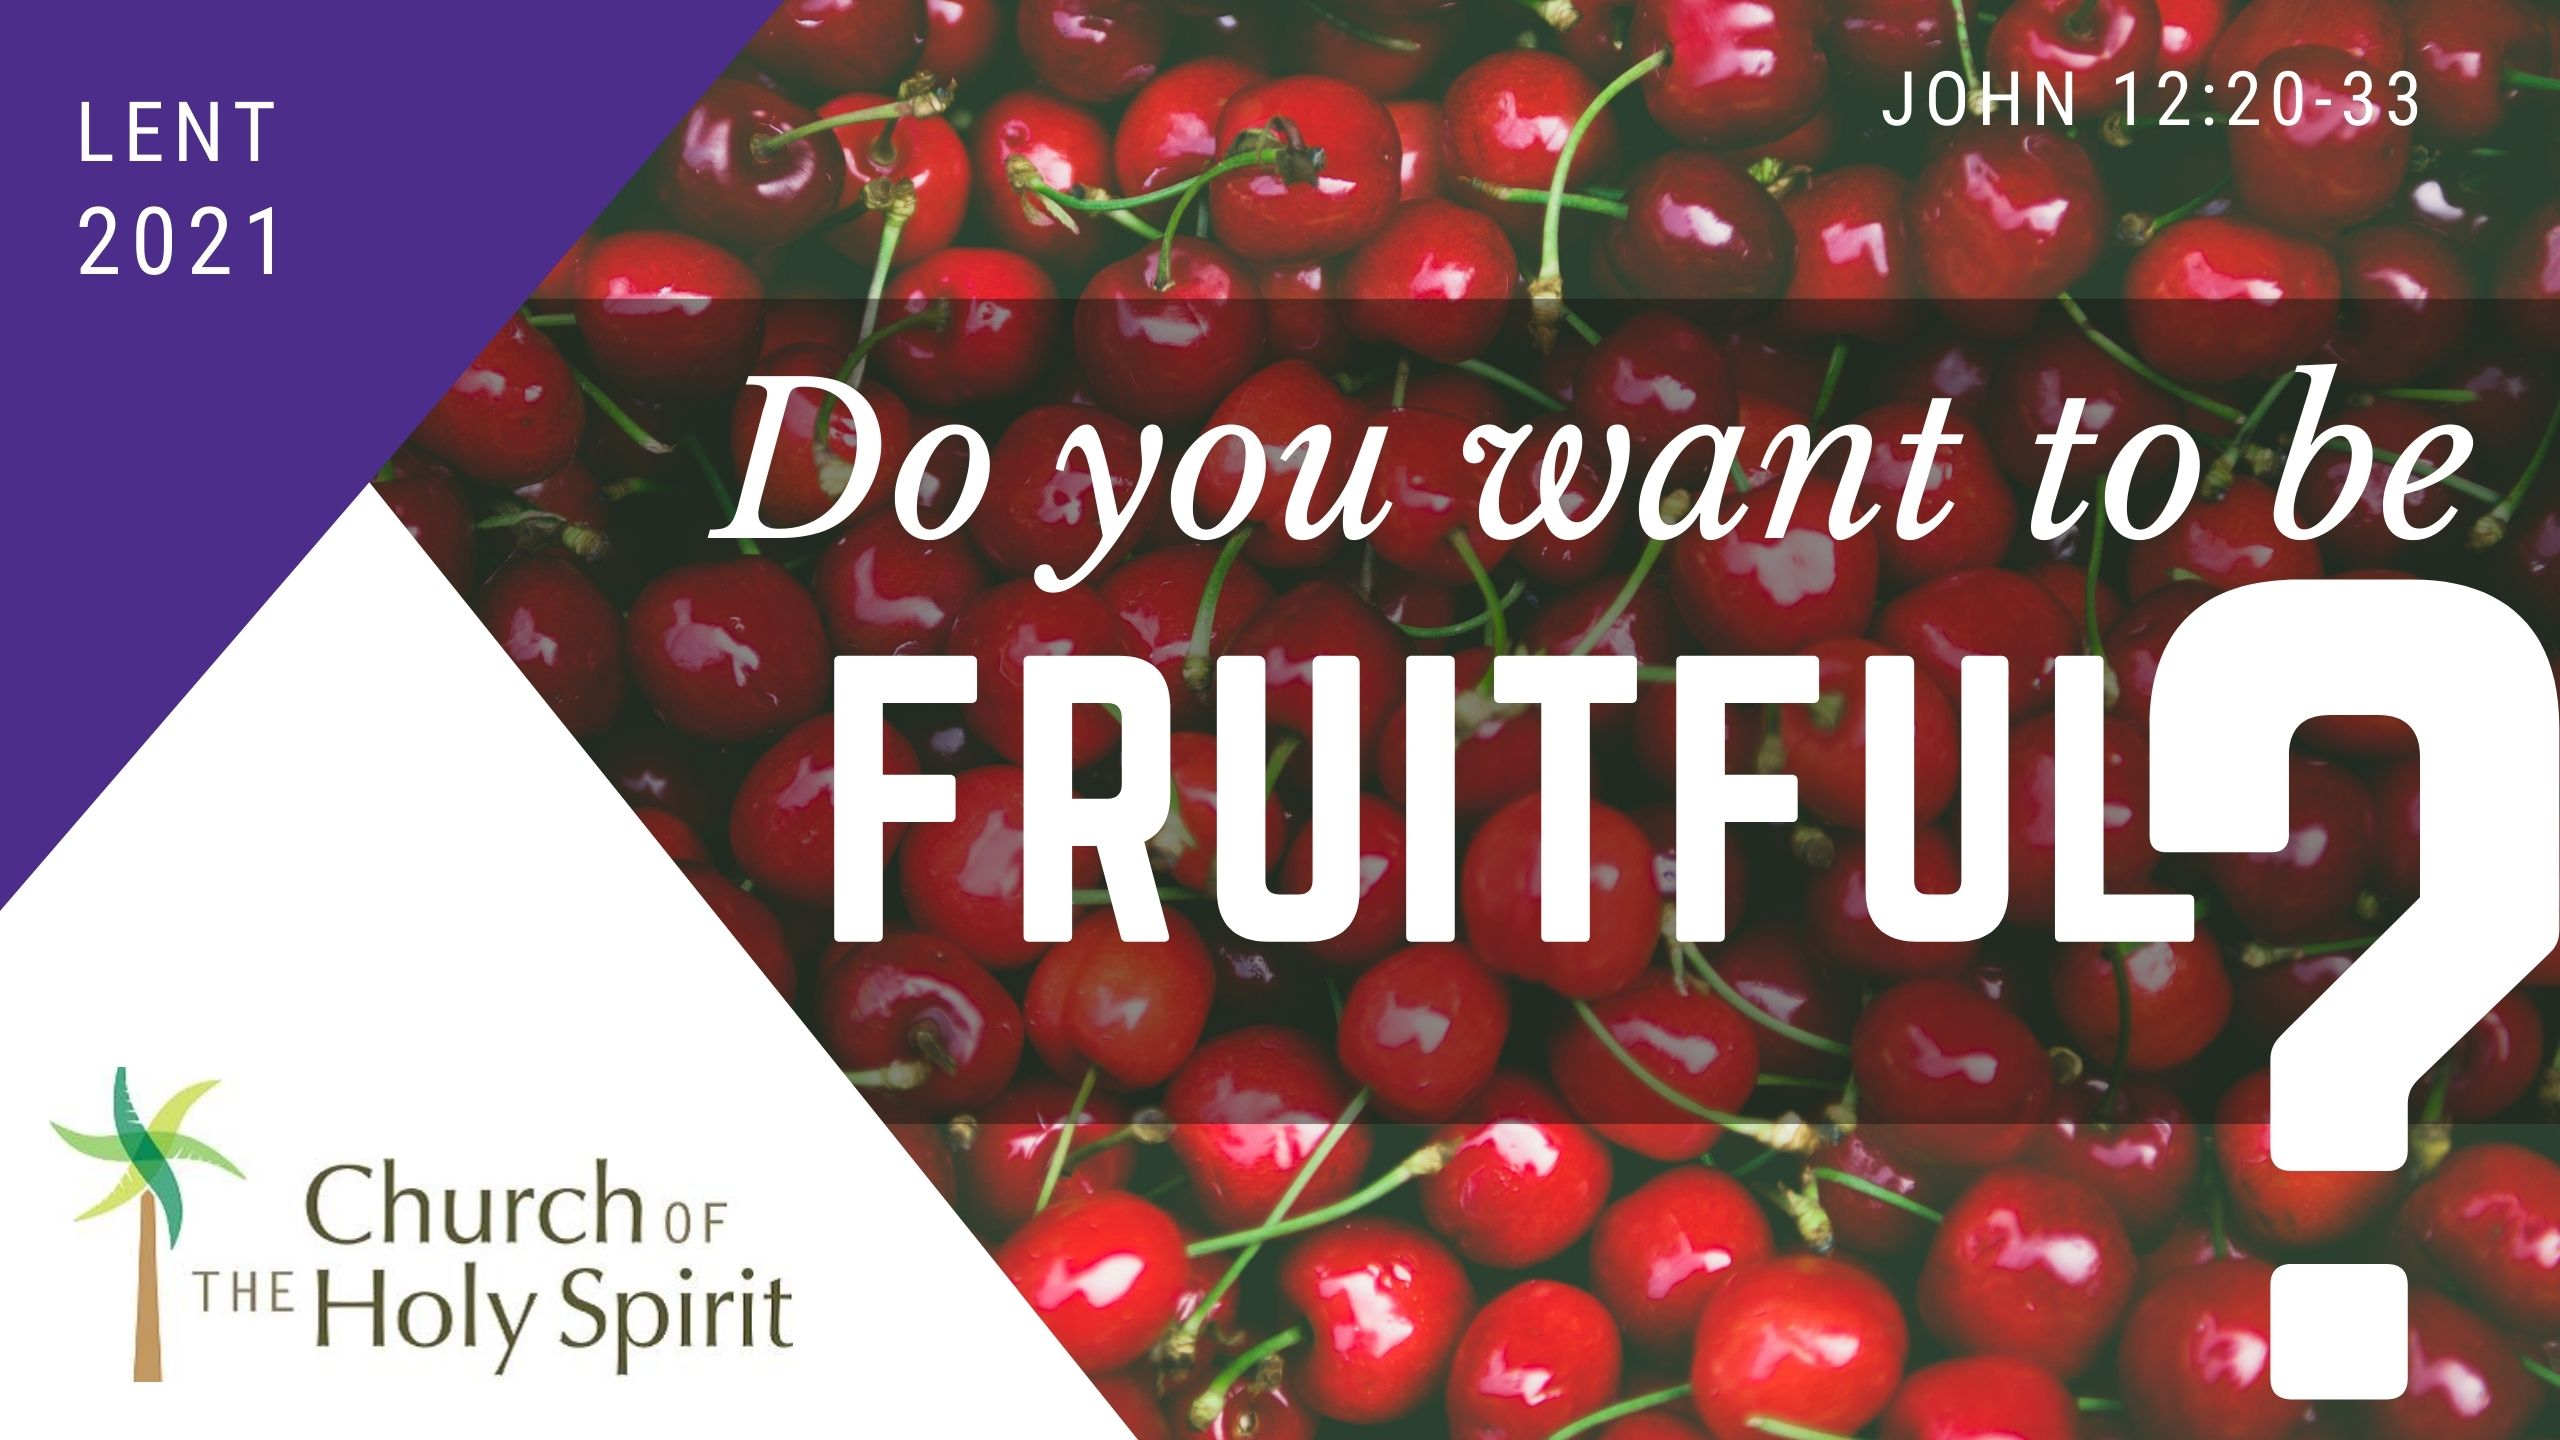 Do you want to be Fruitful